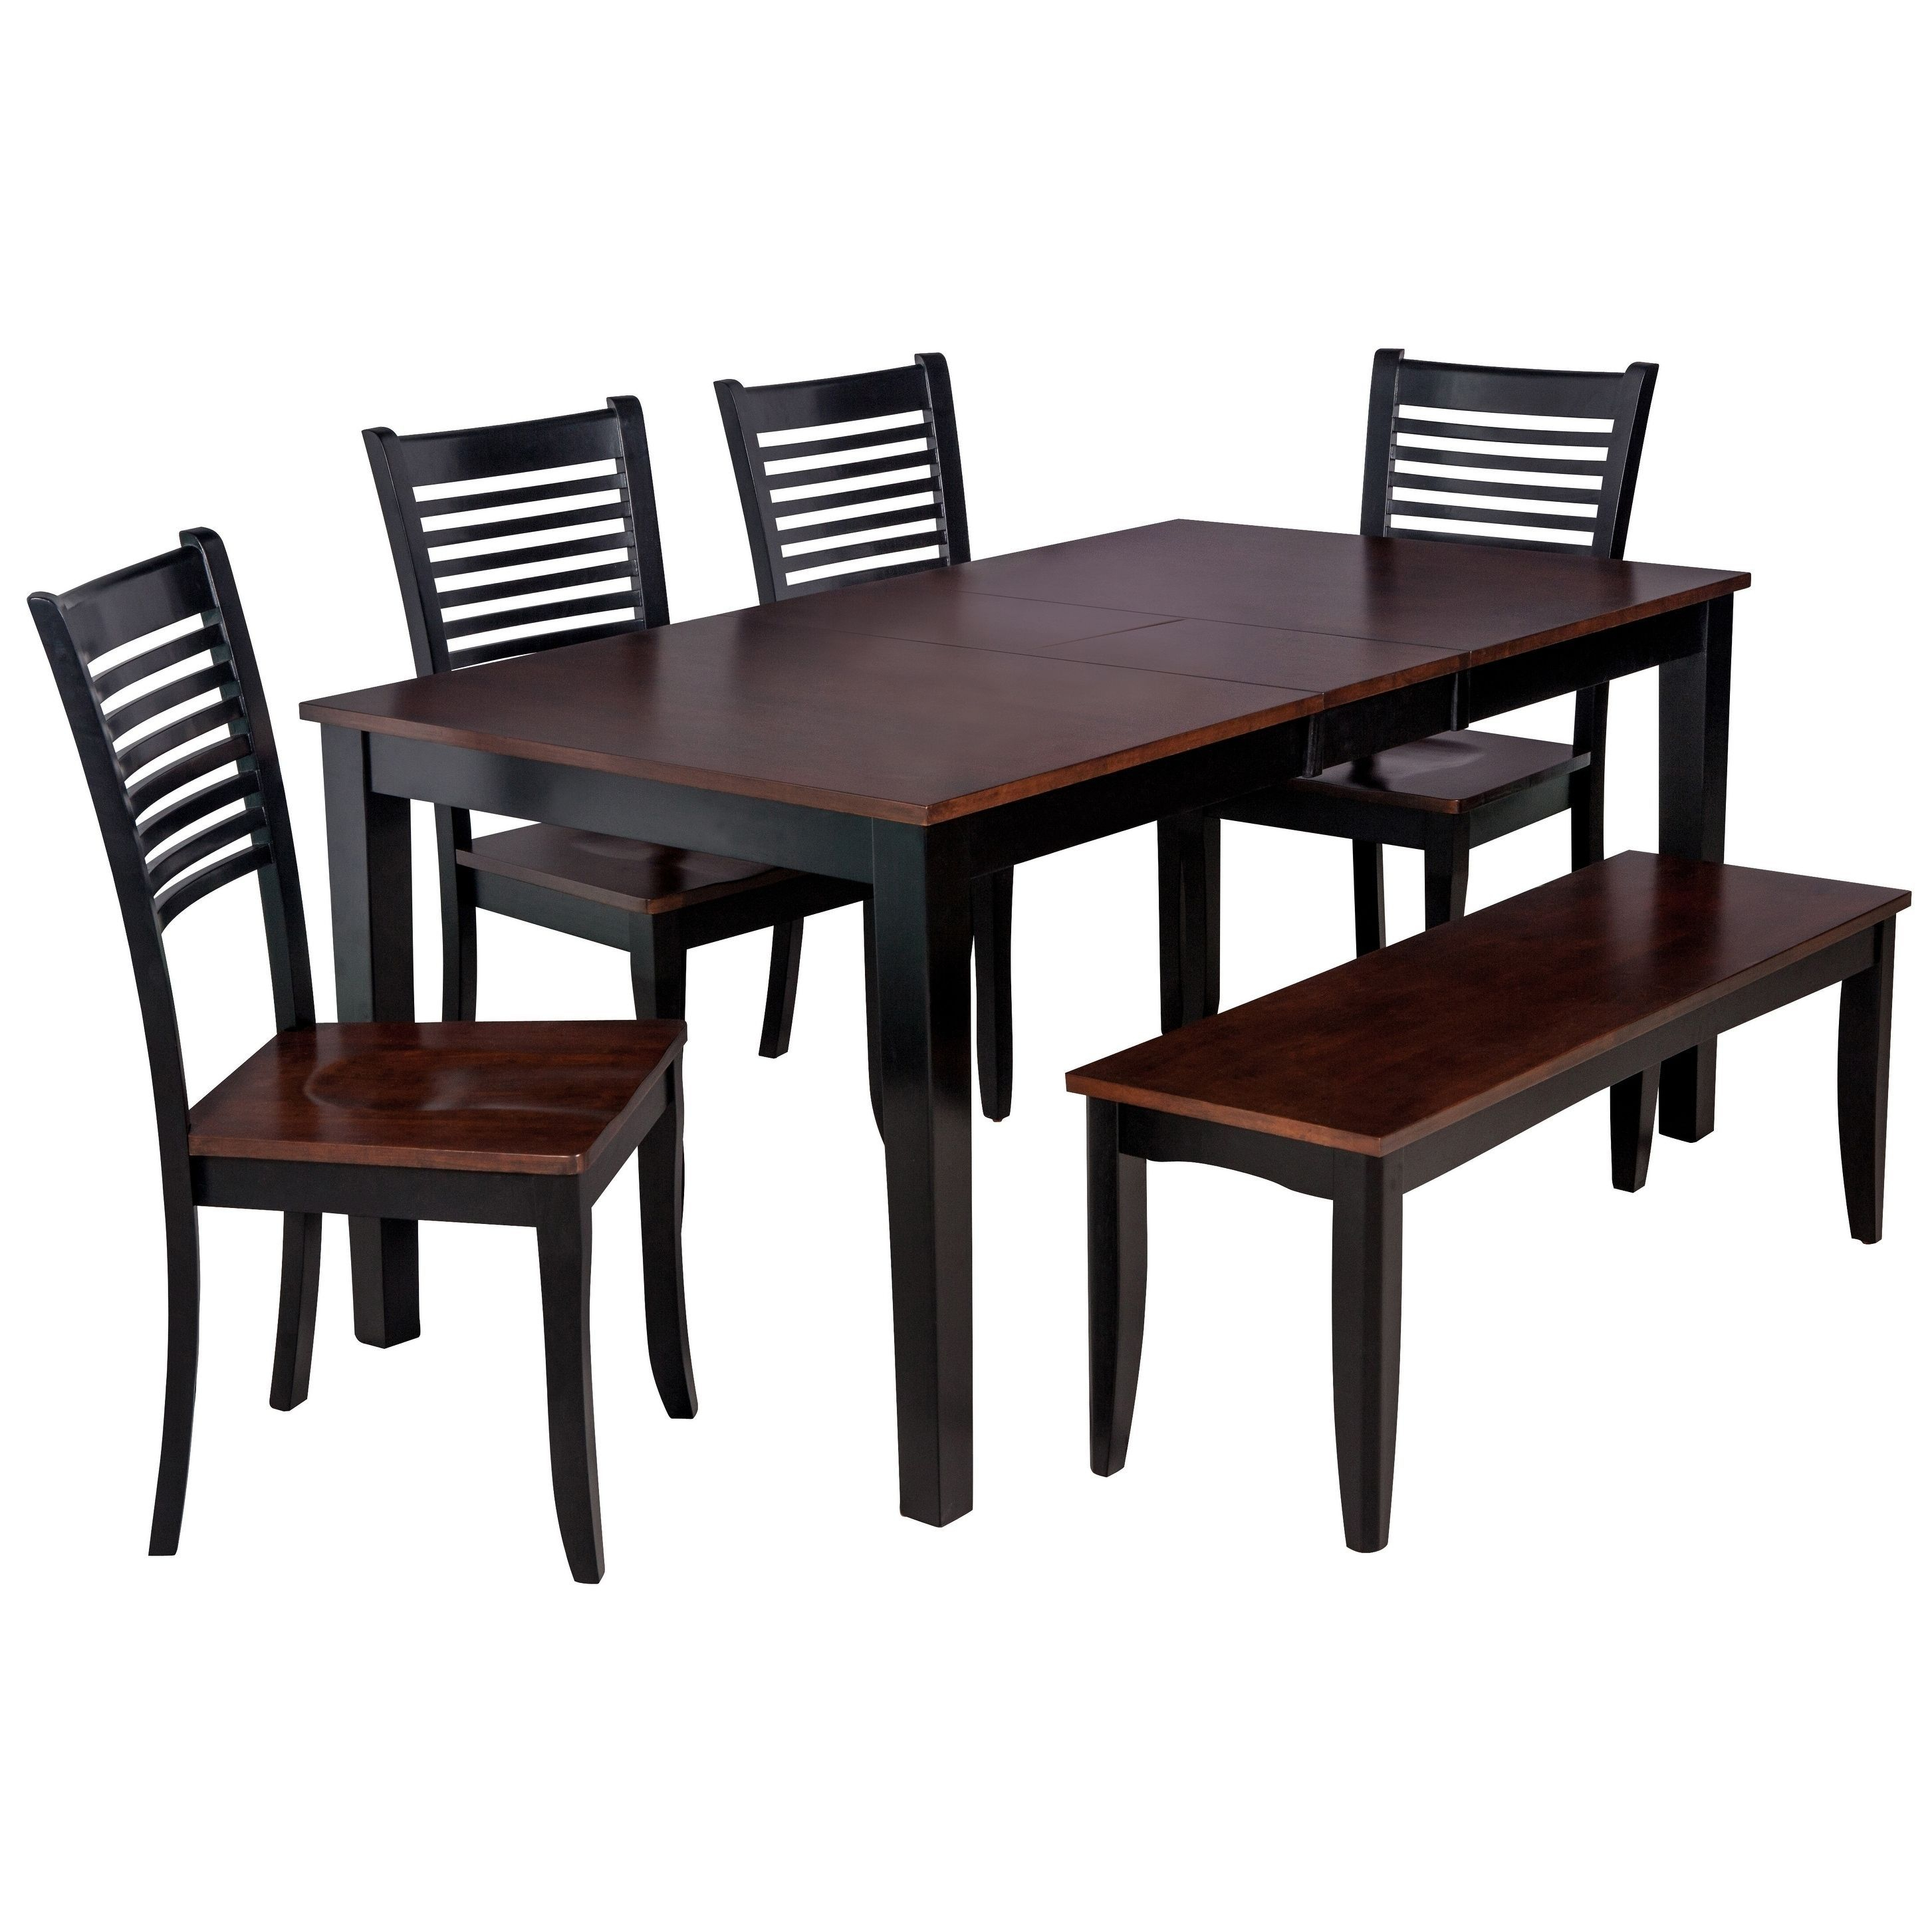 Aden 5 Piece Solid Wood Dining Set | Products | Solid Wood Dining In Newest Adan 5 Piece Solid Wood Dining Sets (Set Of 5) (View 7 of 20)